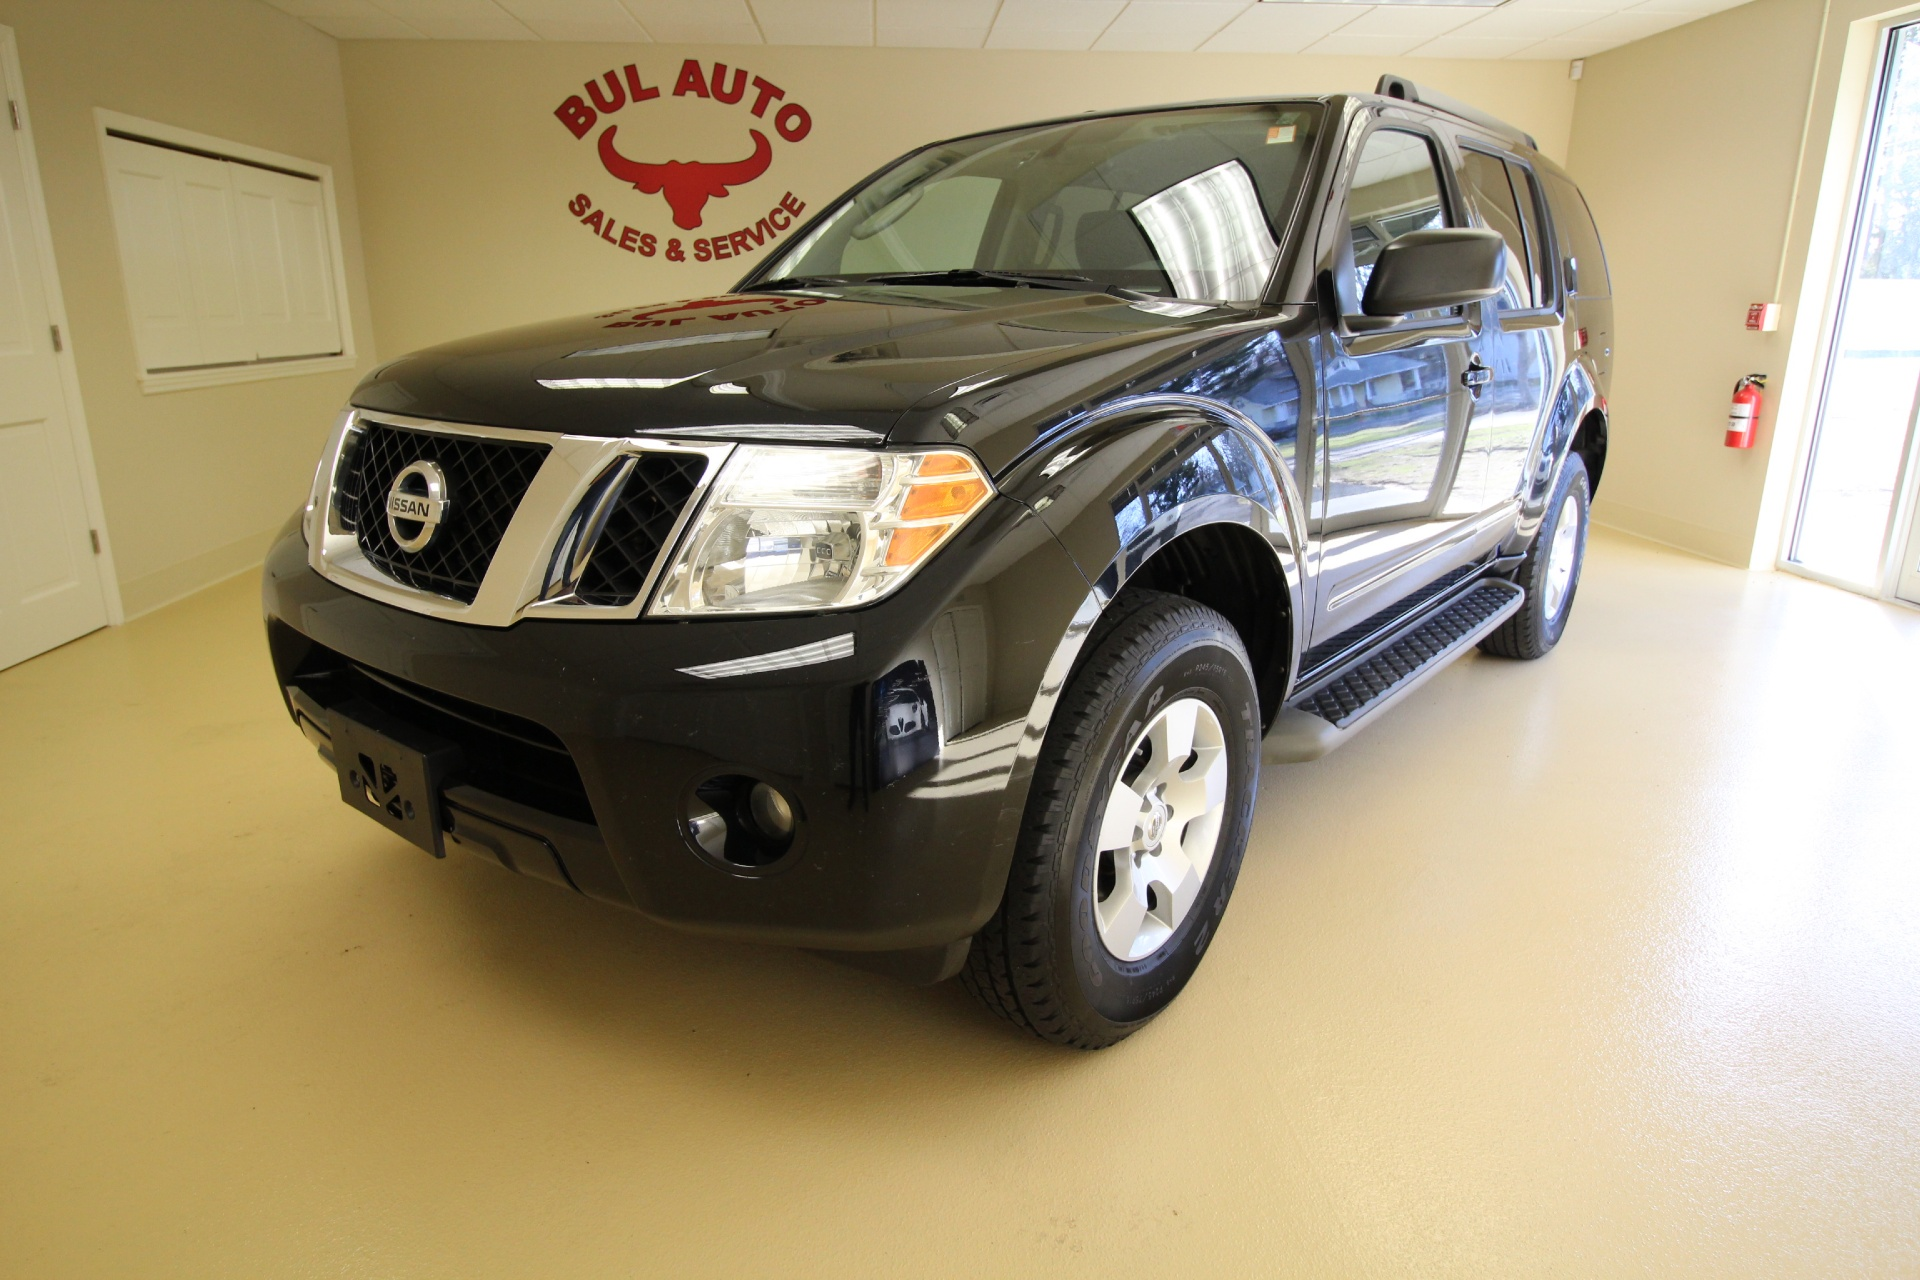 2011 Nissan Pathfinder S 4wd Stock 16053 For Sale Near